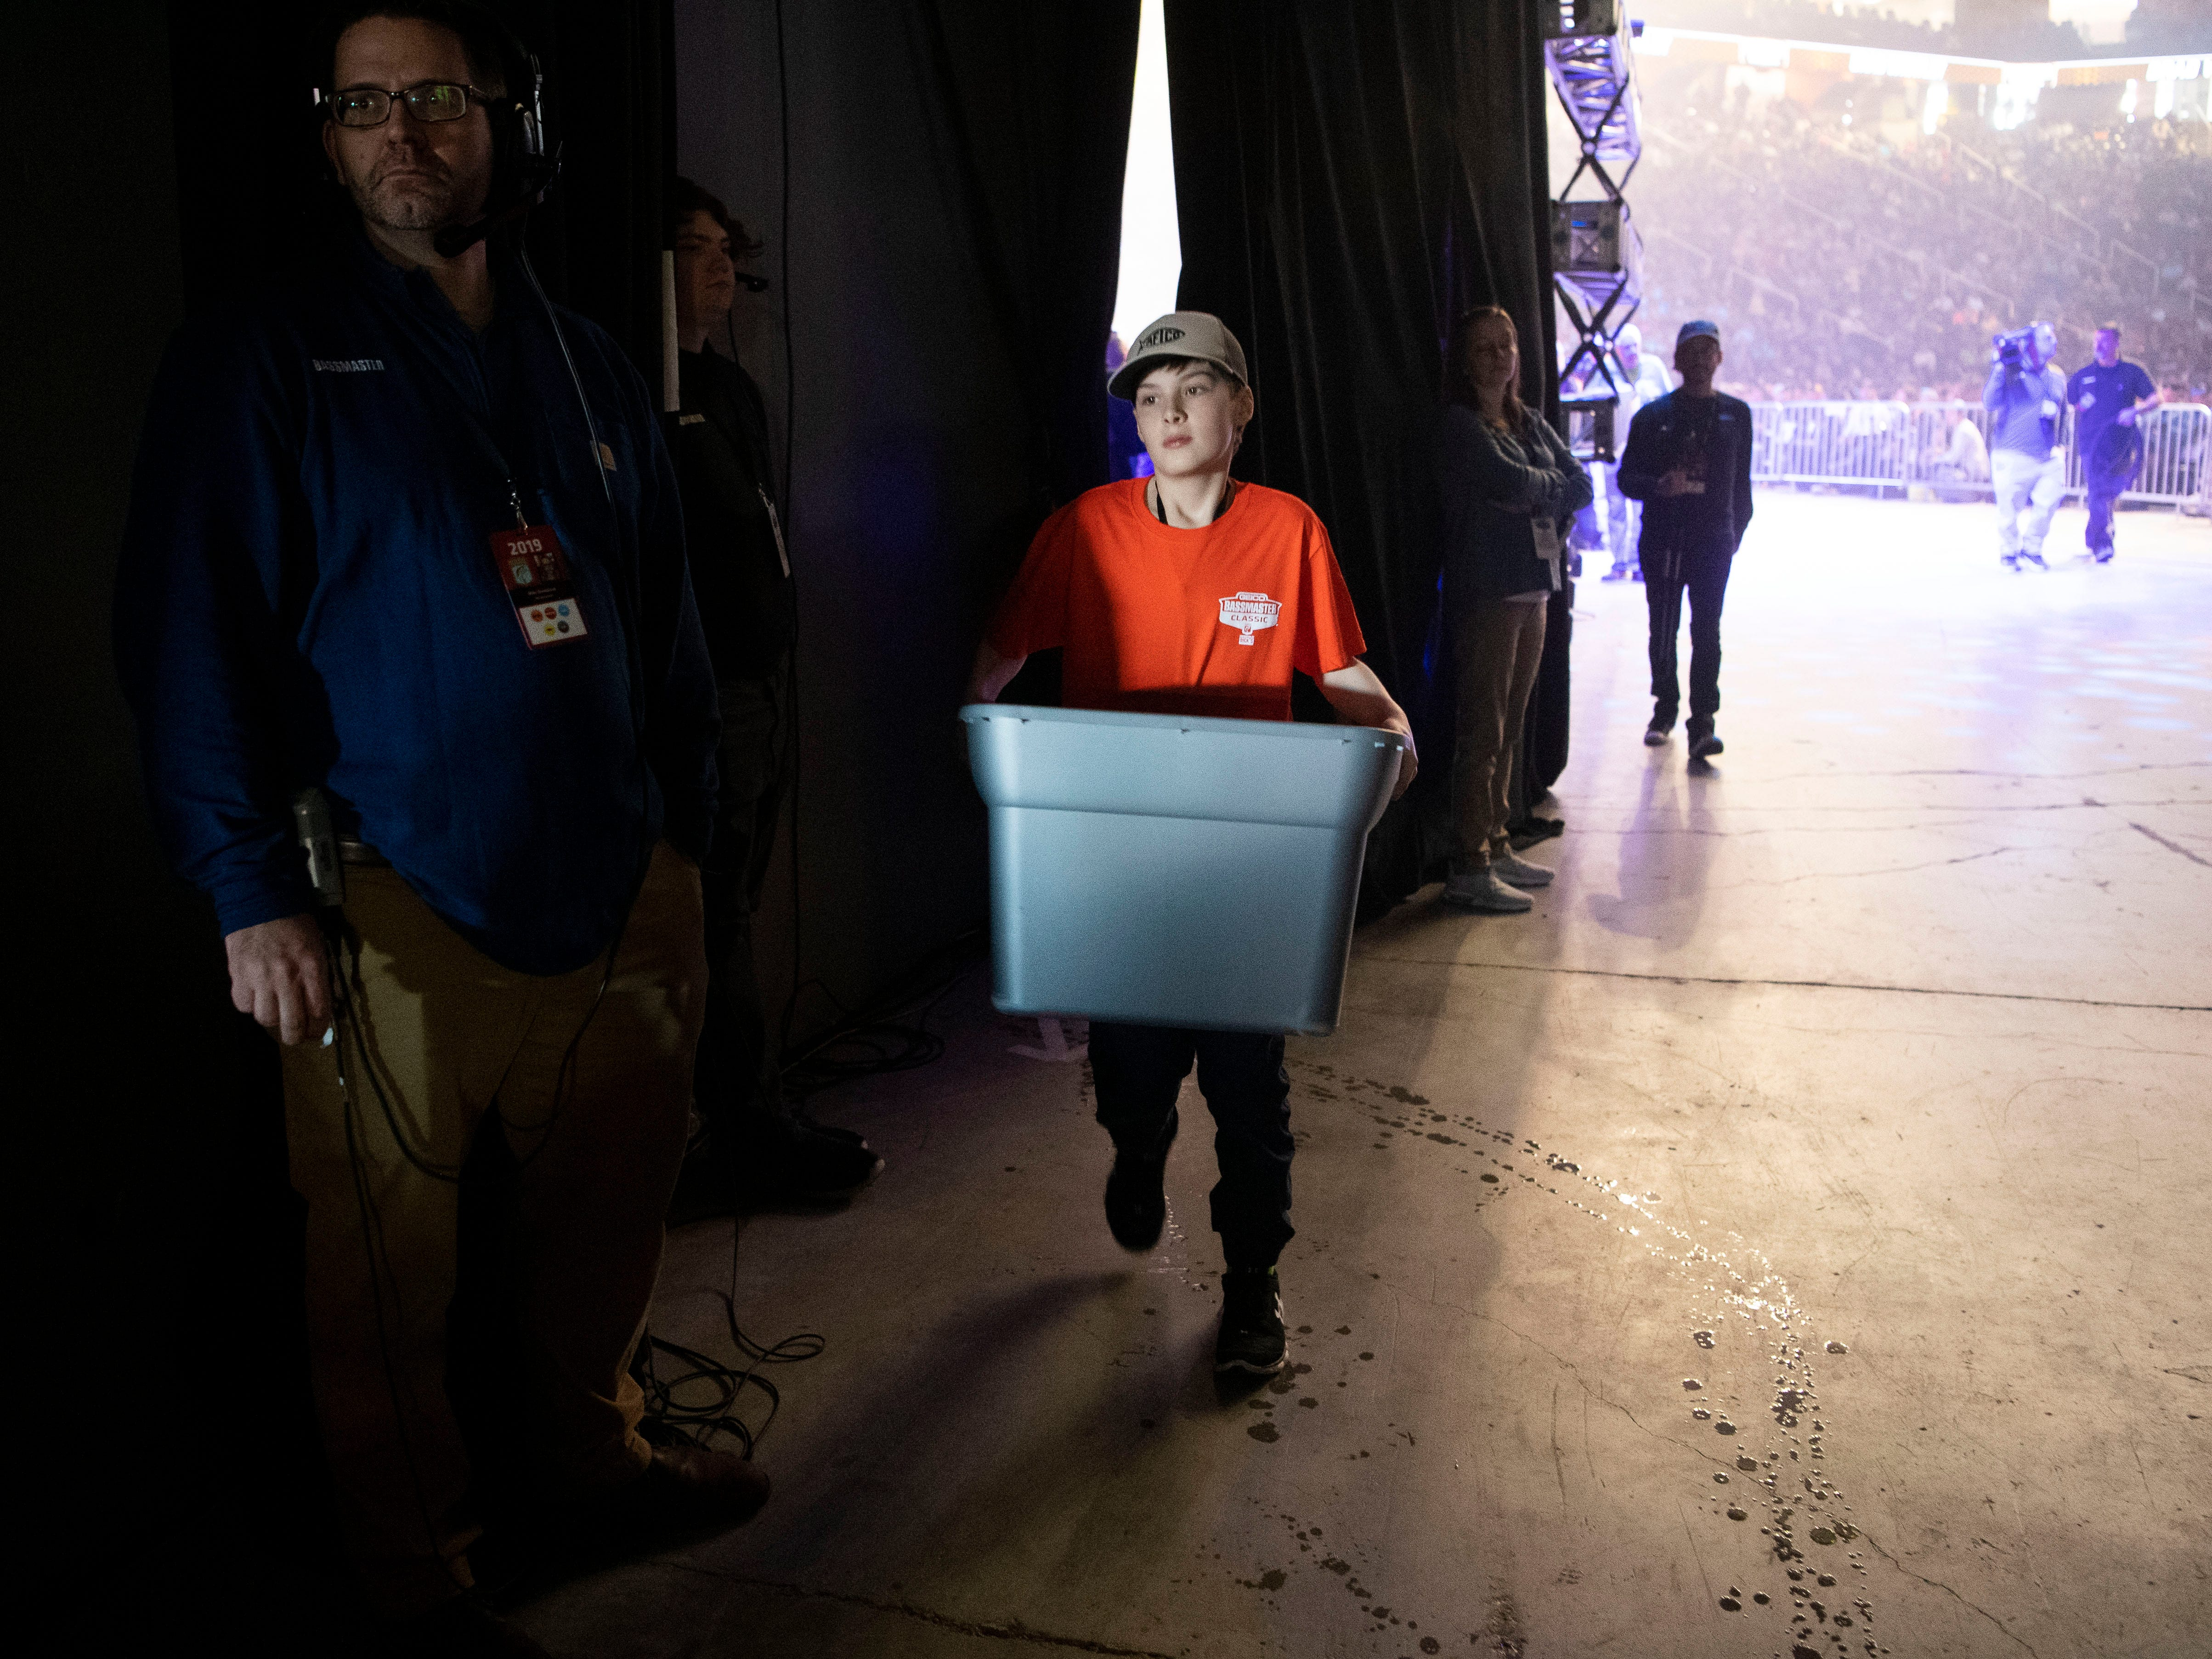 Trevor Barnucz of Ontario carries a container of bass to awaiting TWRA fisheries truck at the first day of weigh-ins during the Bassmaster Classic on Friday, March 15, 2019. Trevor is one of the many volunteers working under the coordination of B.A.S.S conservation director Gene Gilliland.